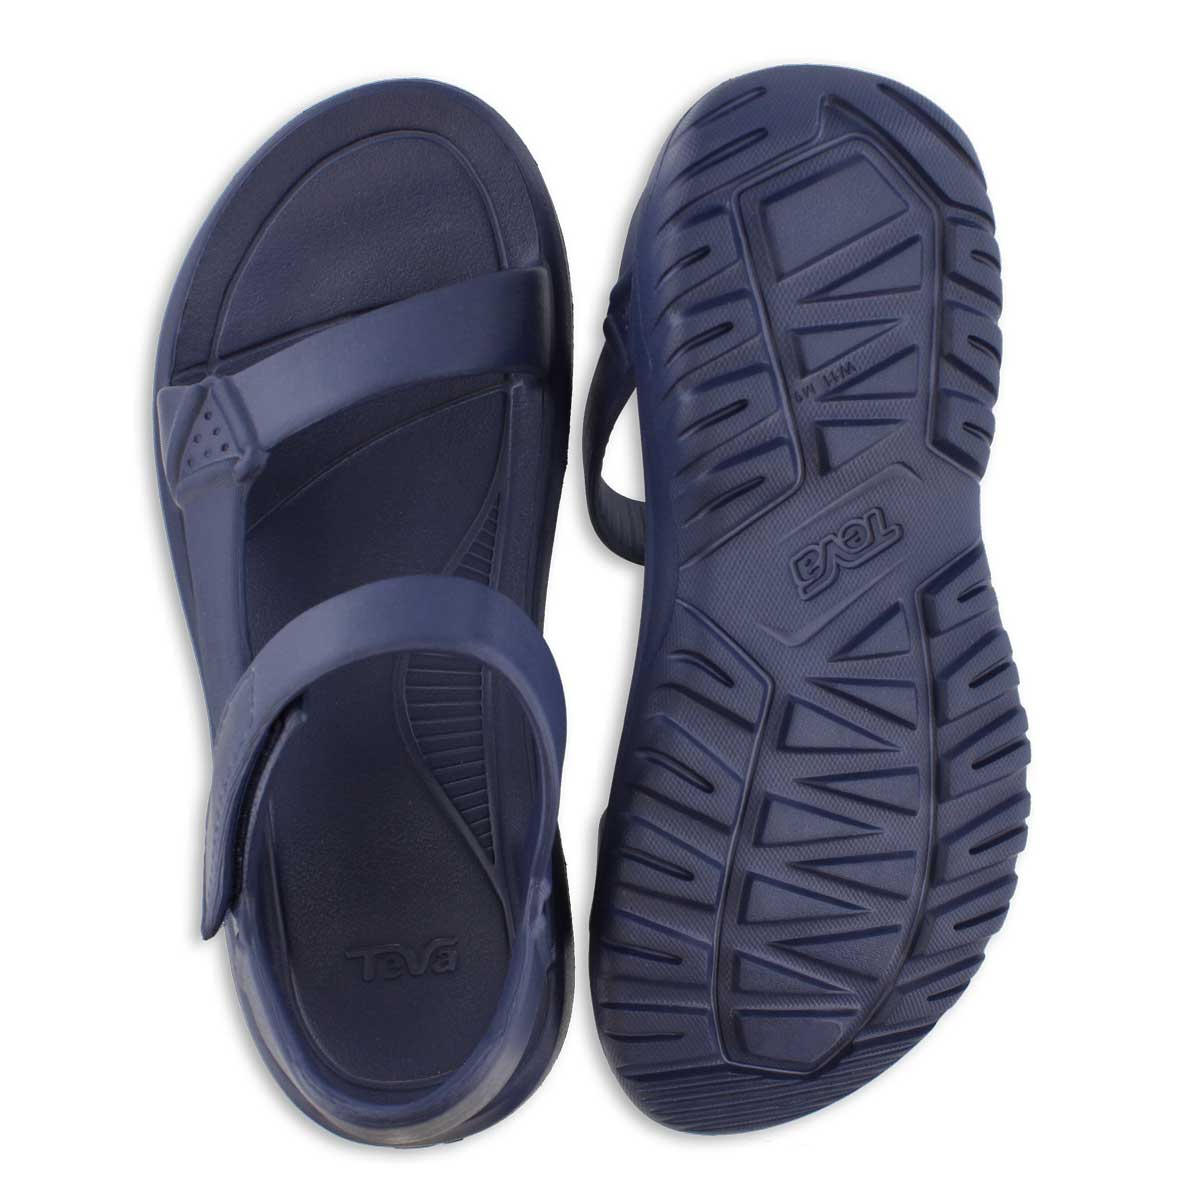 Mns Hurricane Drift eclipse sport sandal